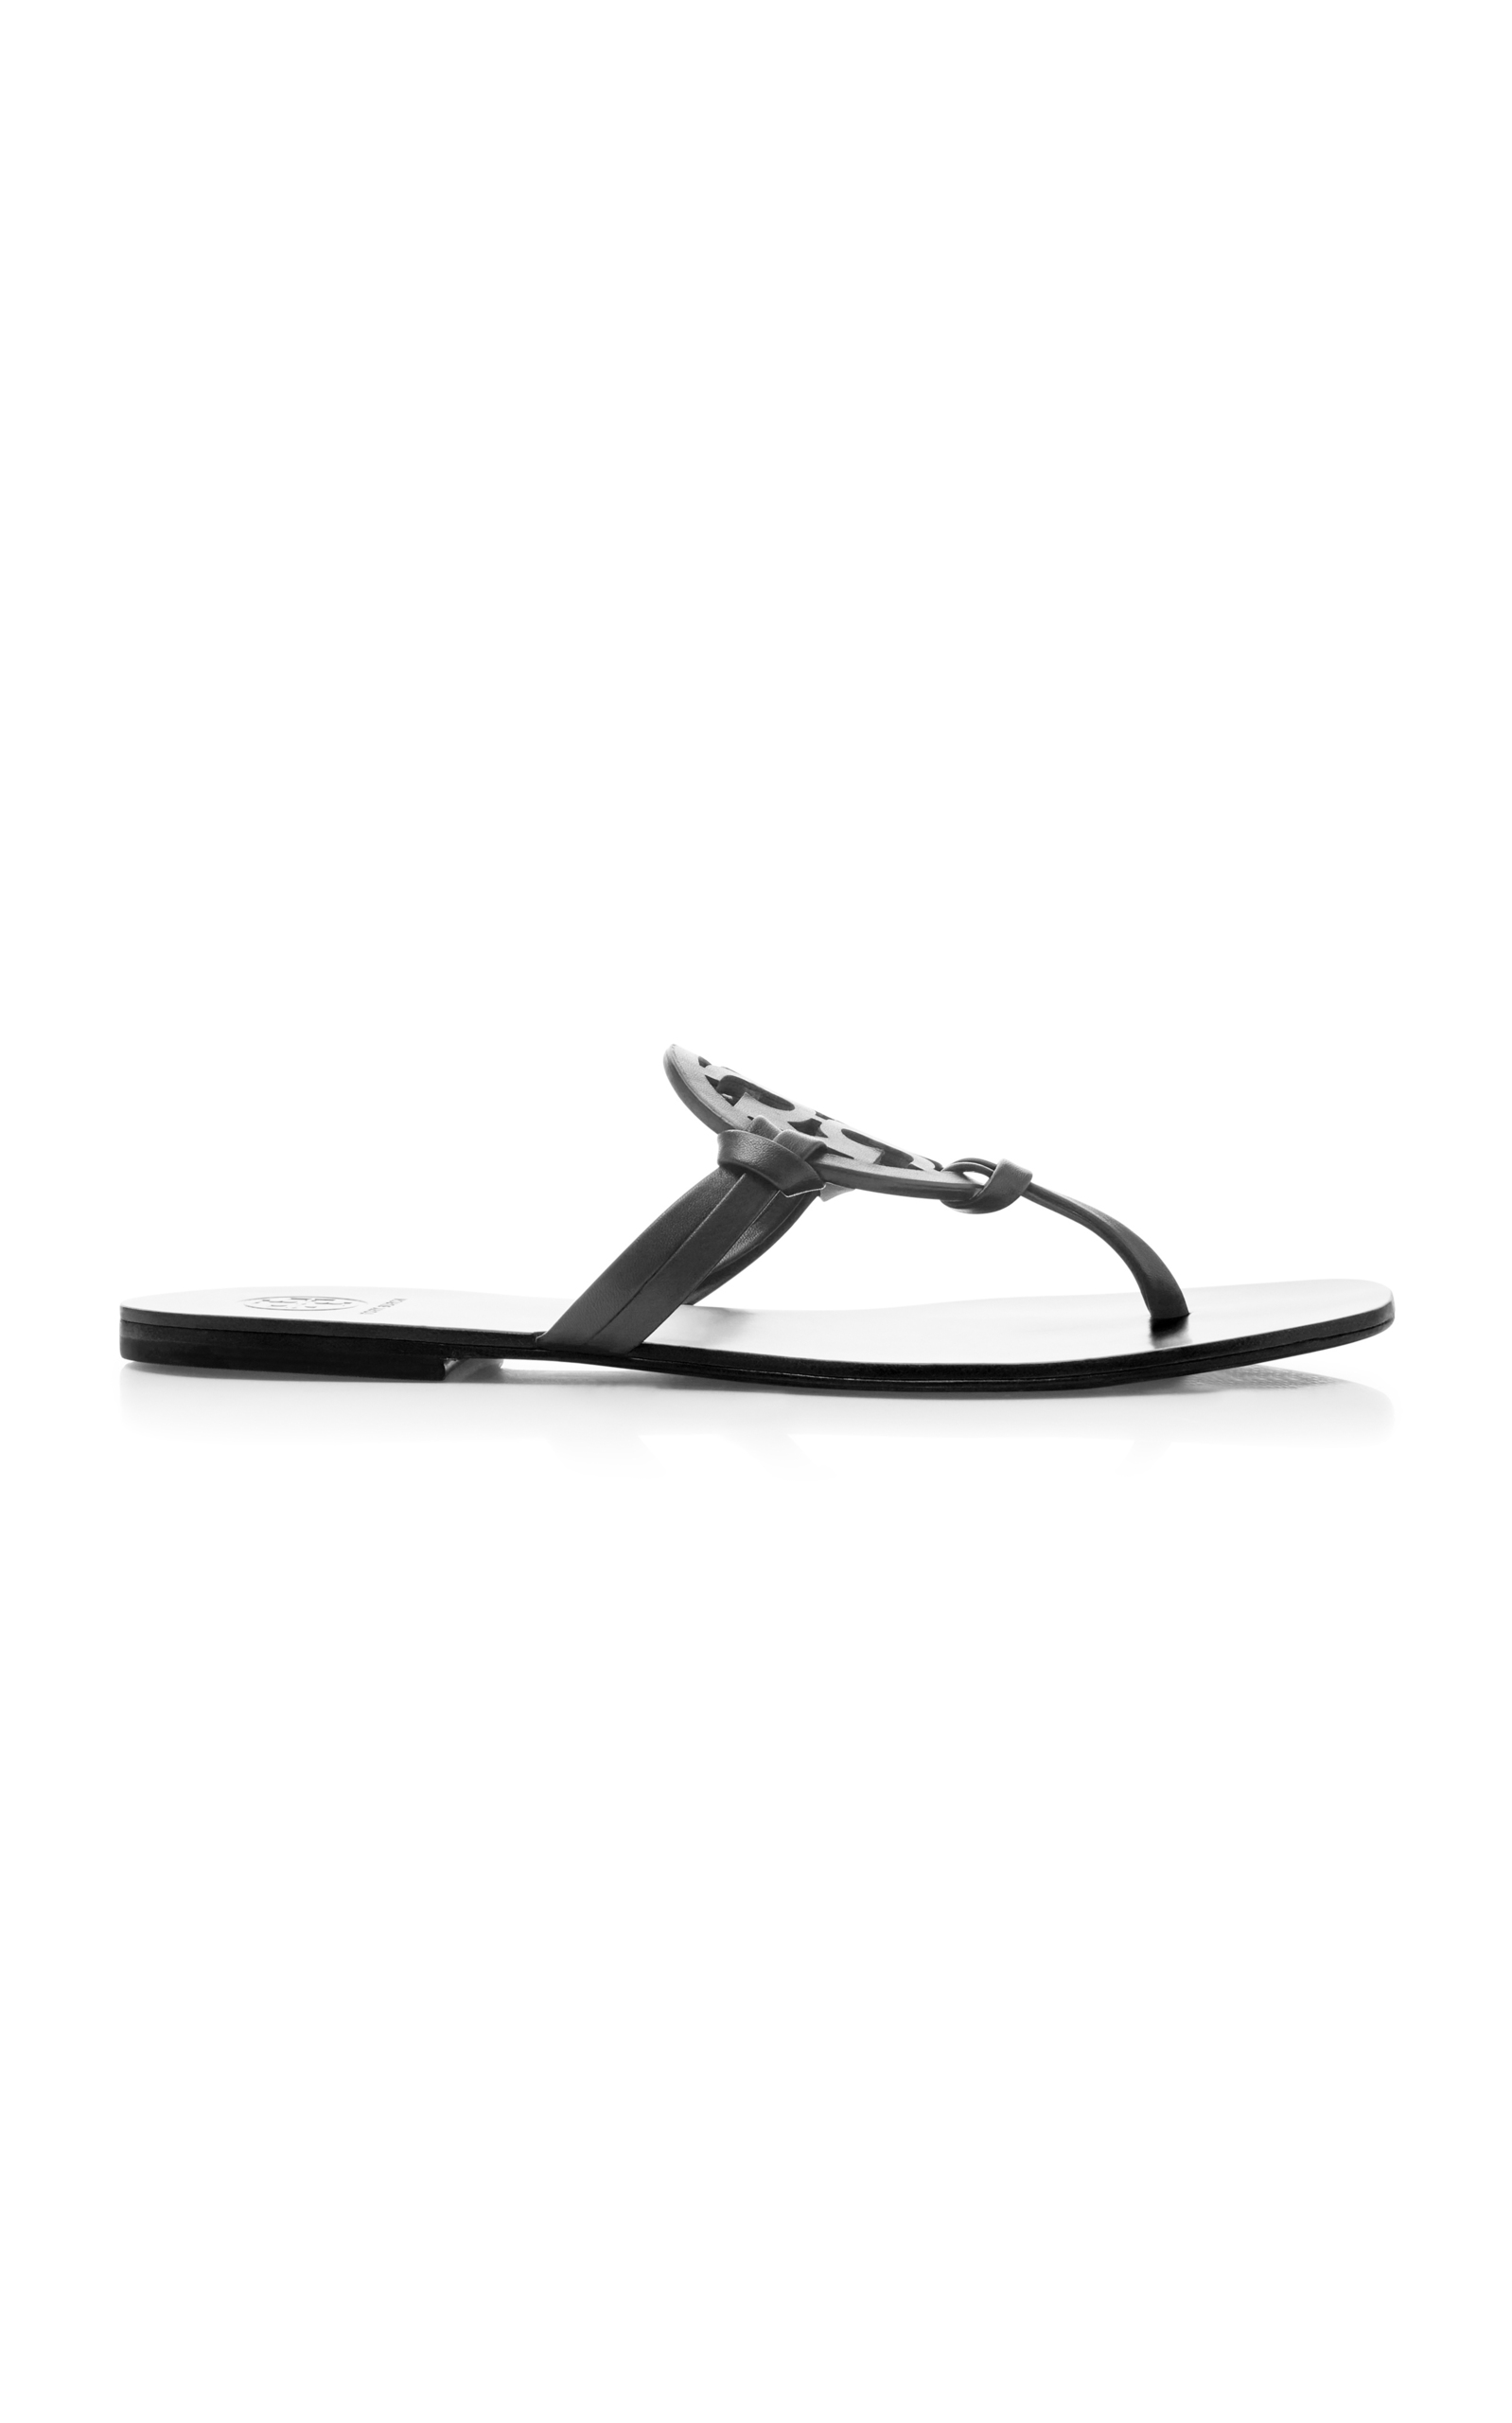 87d963f2afc75f Square Toe Miller Sandal by Tory Burch